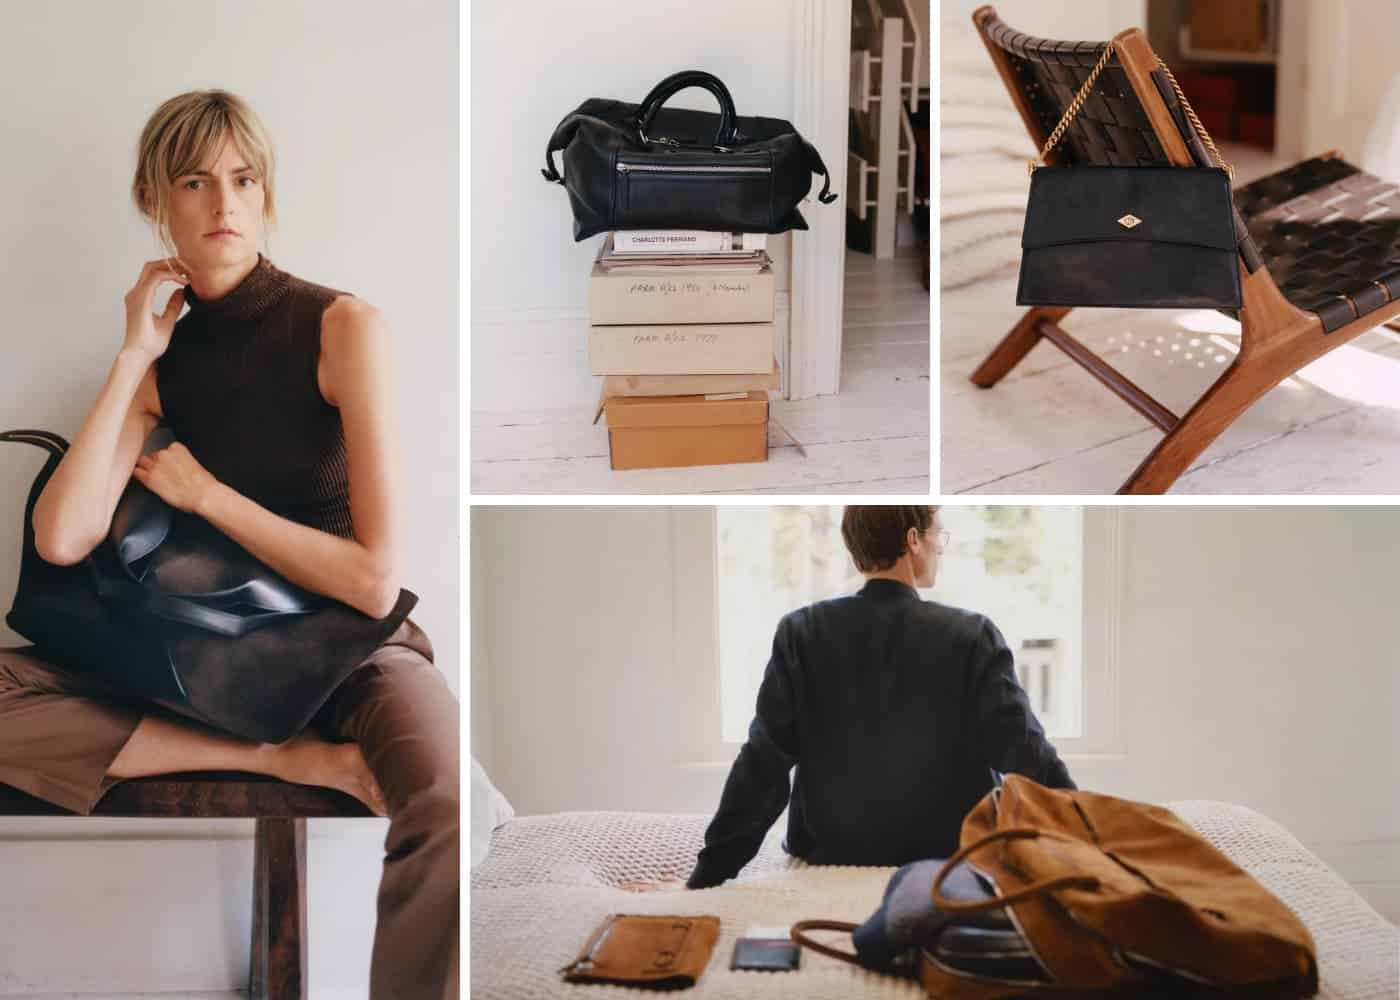 Métier London Product Shoot at Chesterton Location - The Location Guys